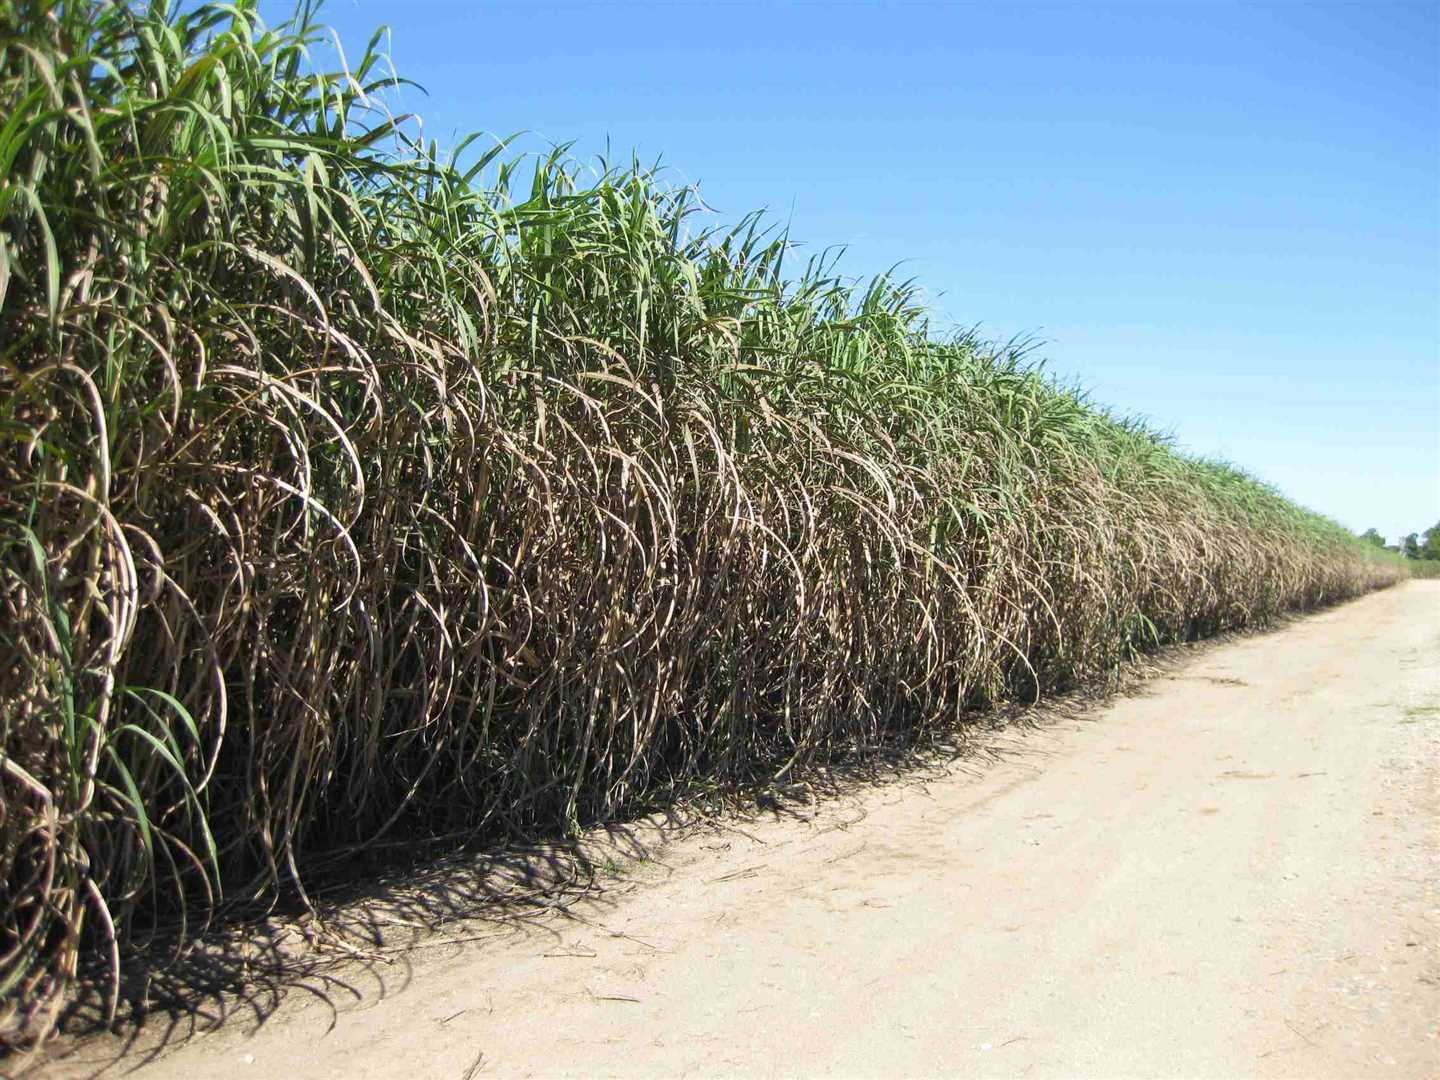 View of part of property showing part of cane crop, photo 4